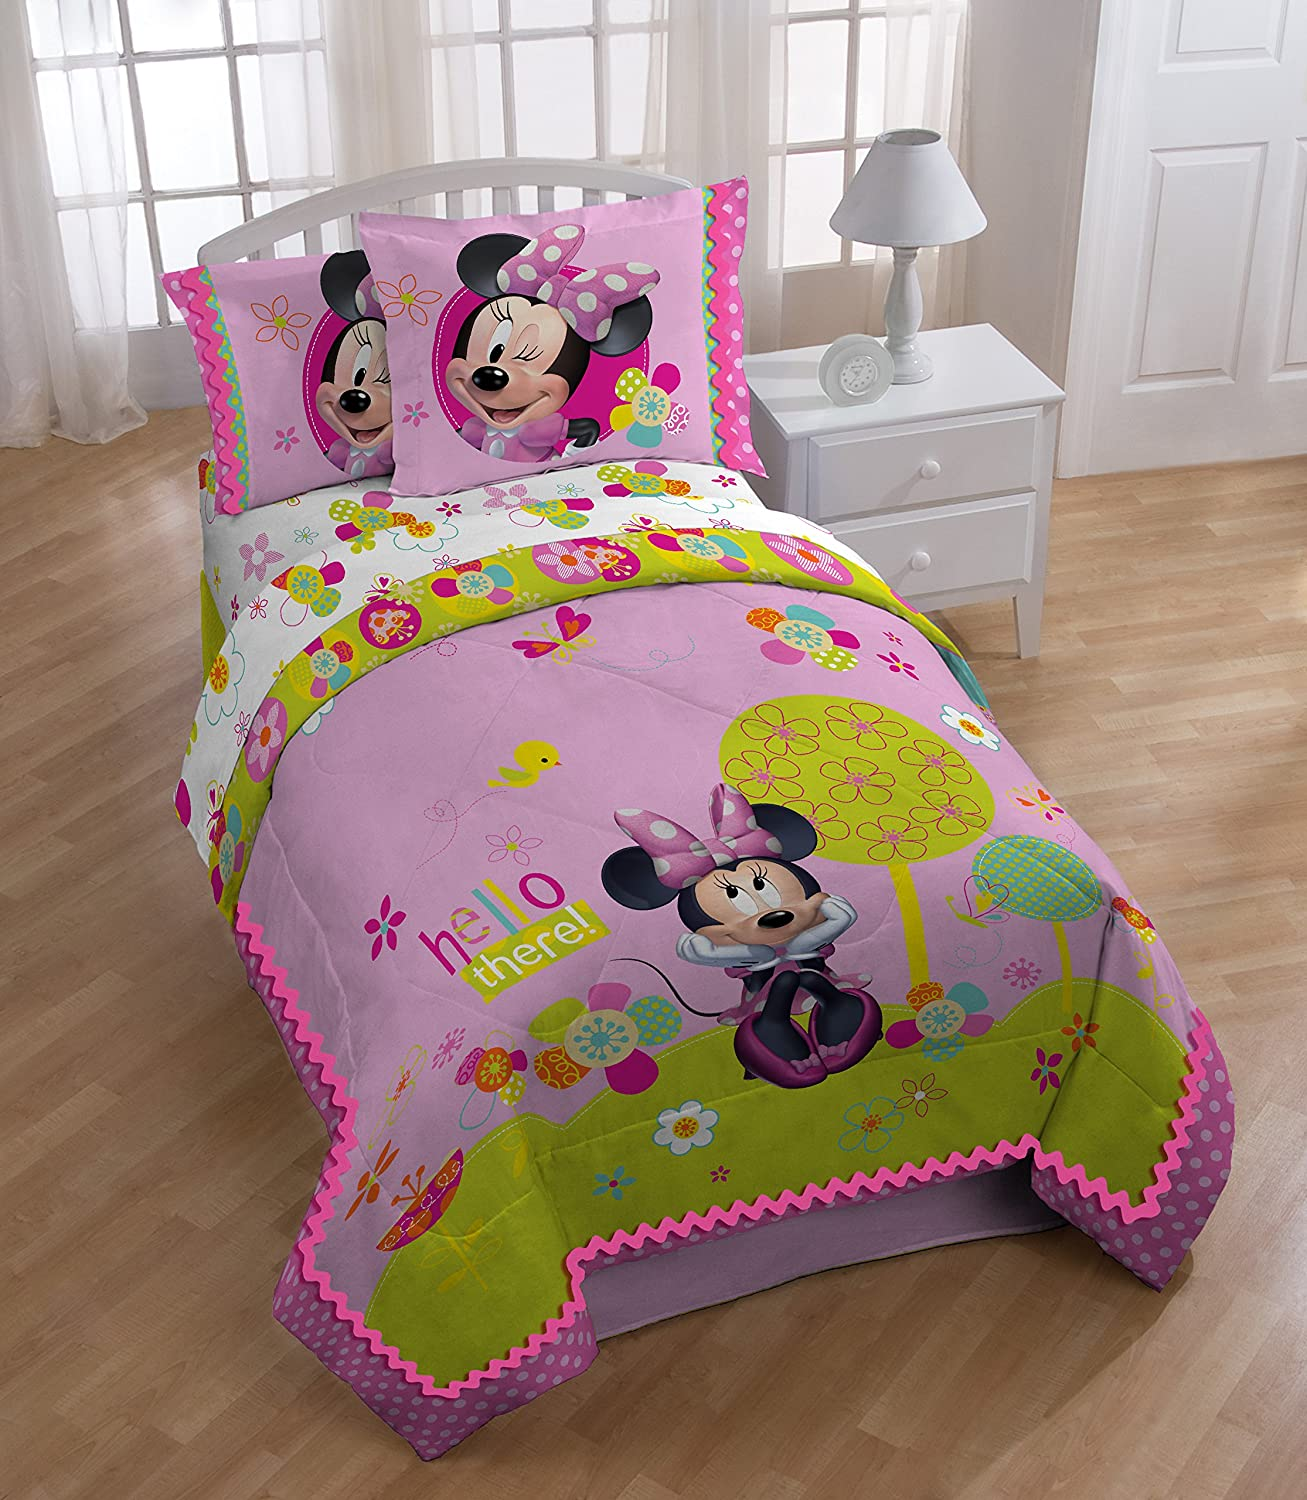 Disney Minnie Mouse Bowtique Garden Party Reversible Full Reversible Comforter